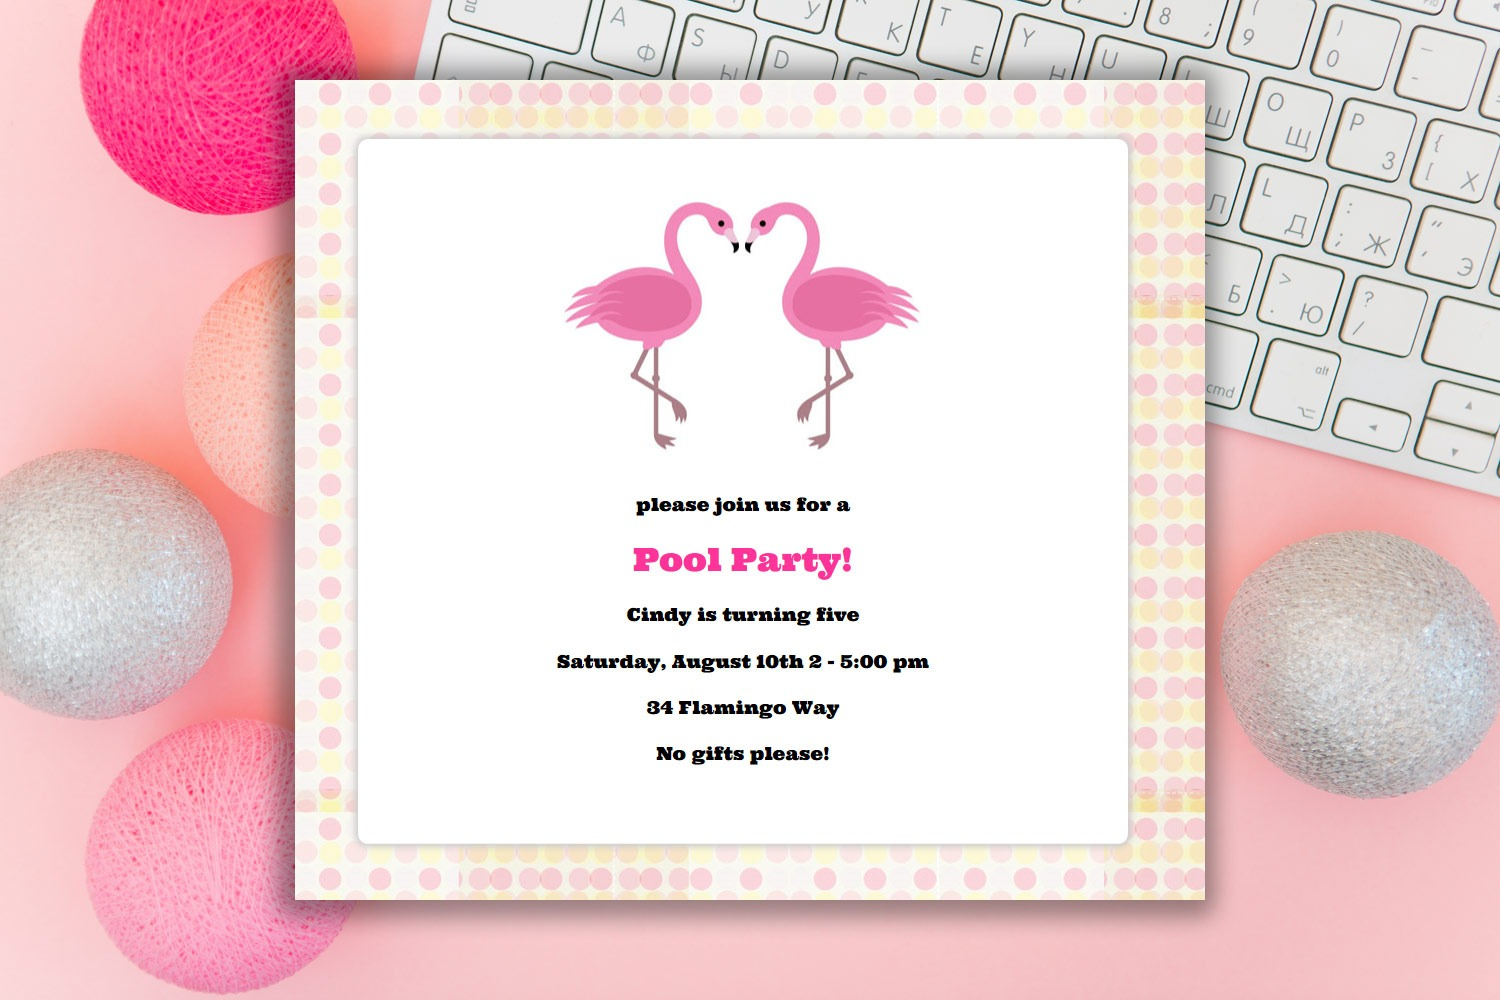 Planning a flamingo party? Use this evite - free for up to 10 guests!